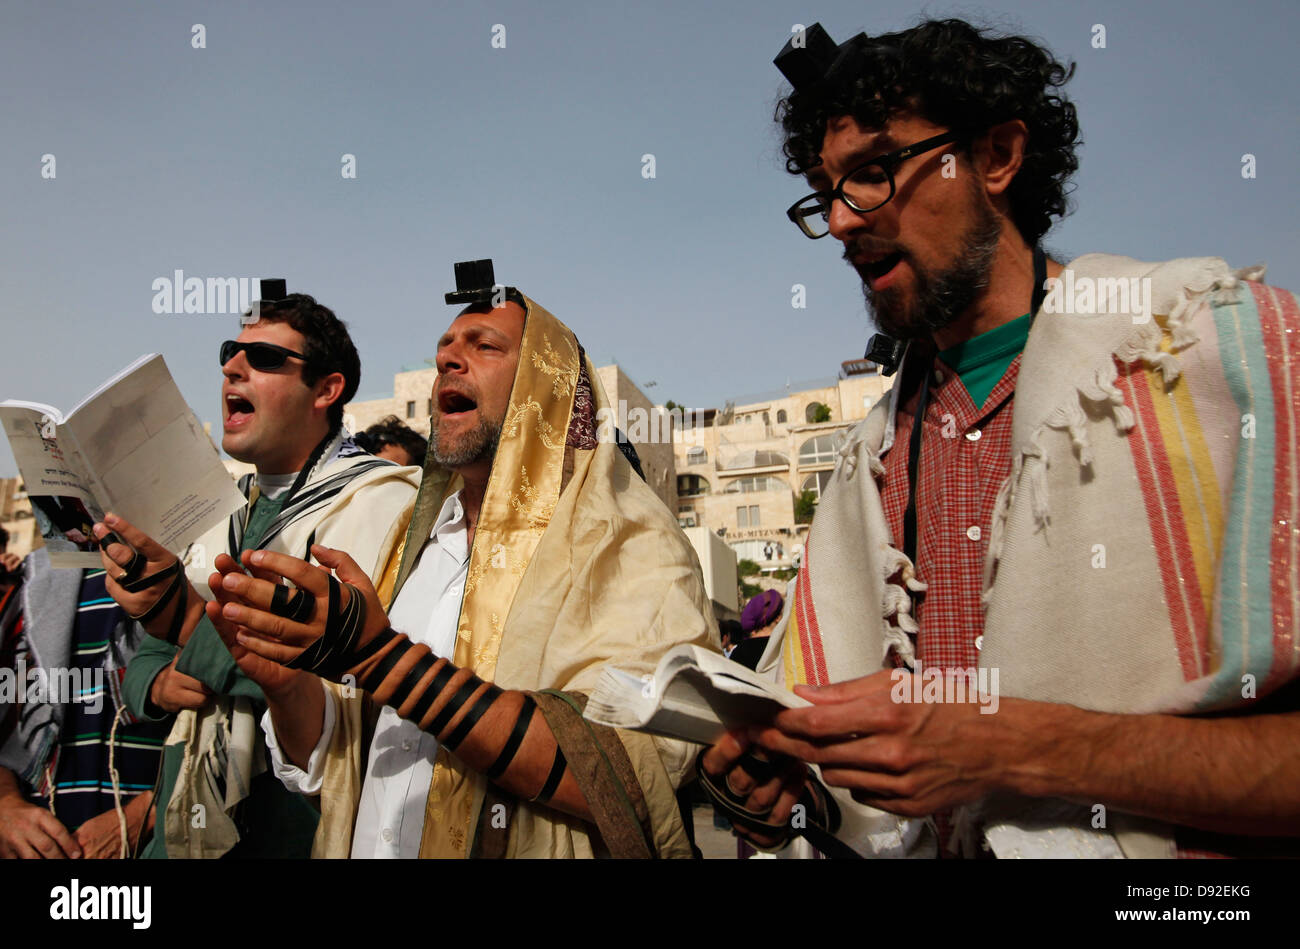 Members of the religious Reform Judaism praying in the Western Wall in the Old City of Jerusalem Israel - Stock Image